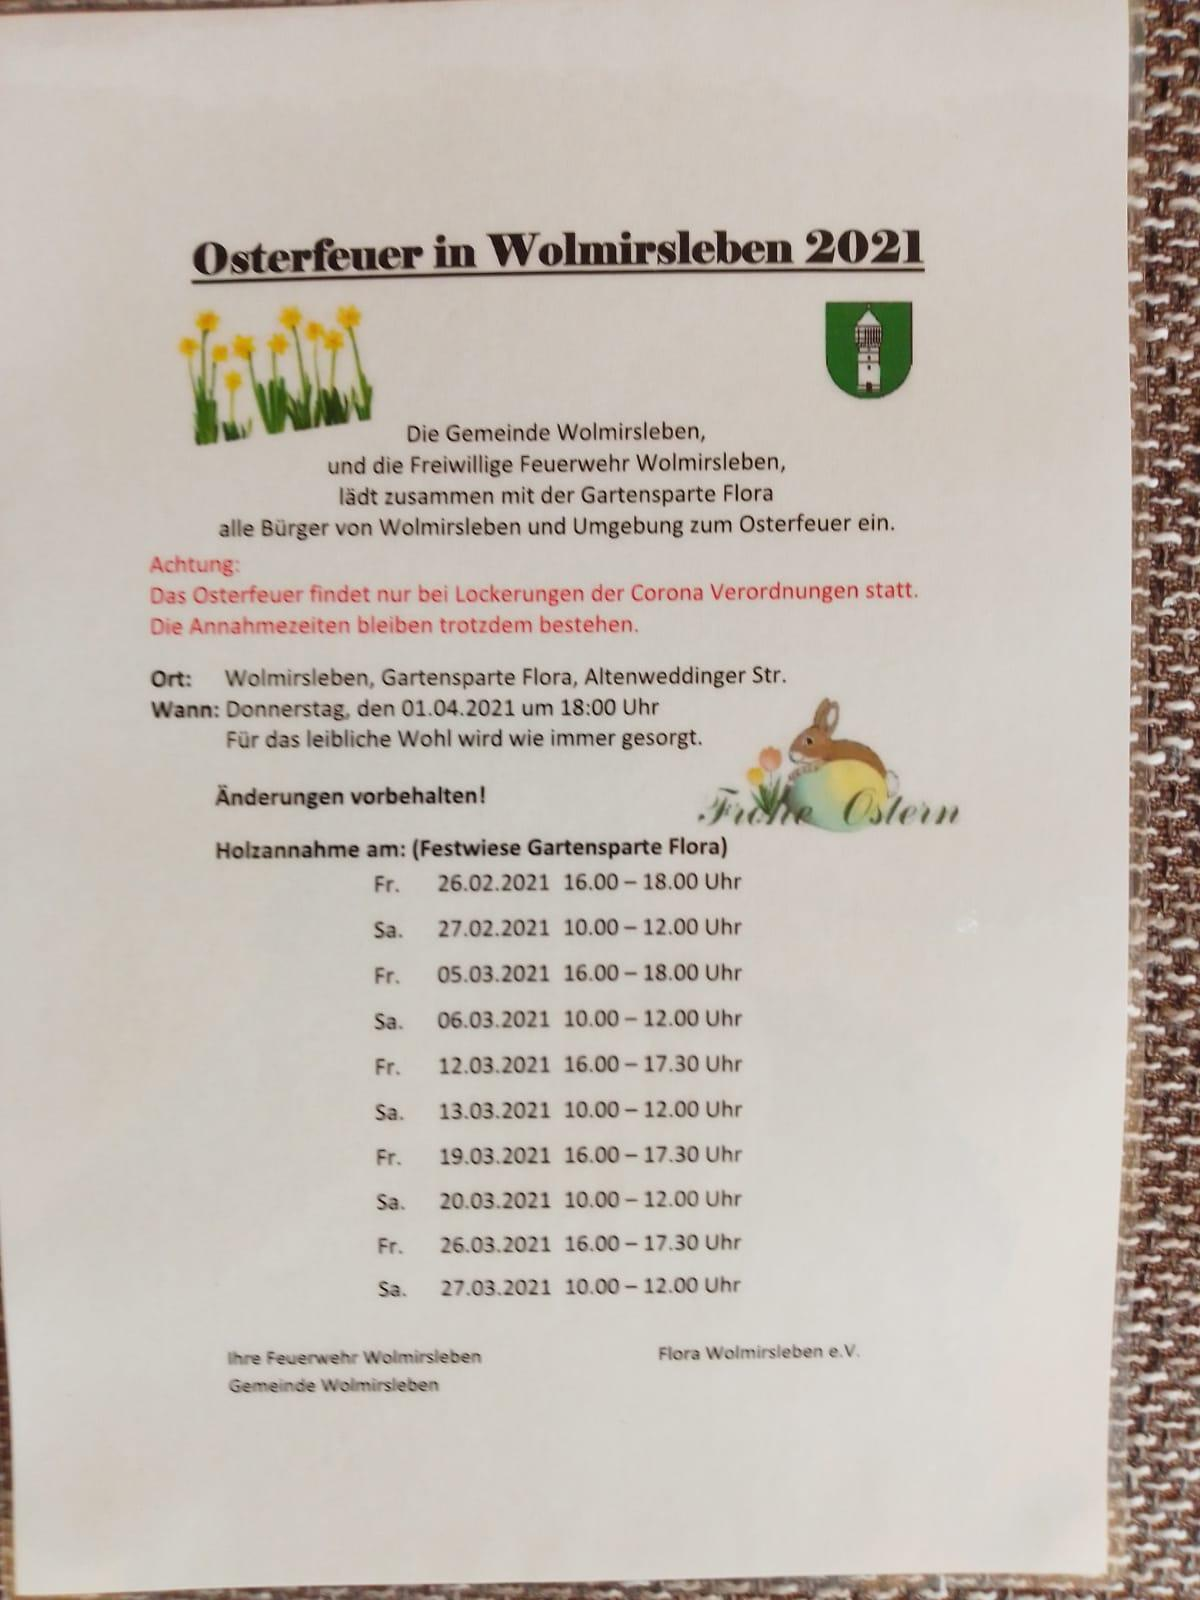 Osterfeuer2021